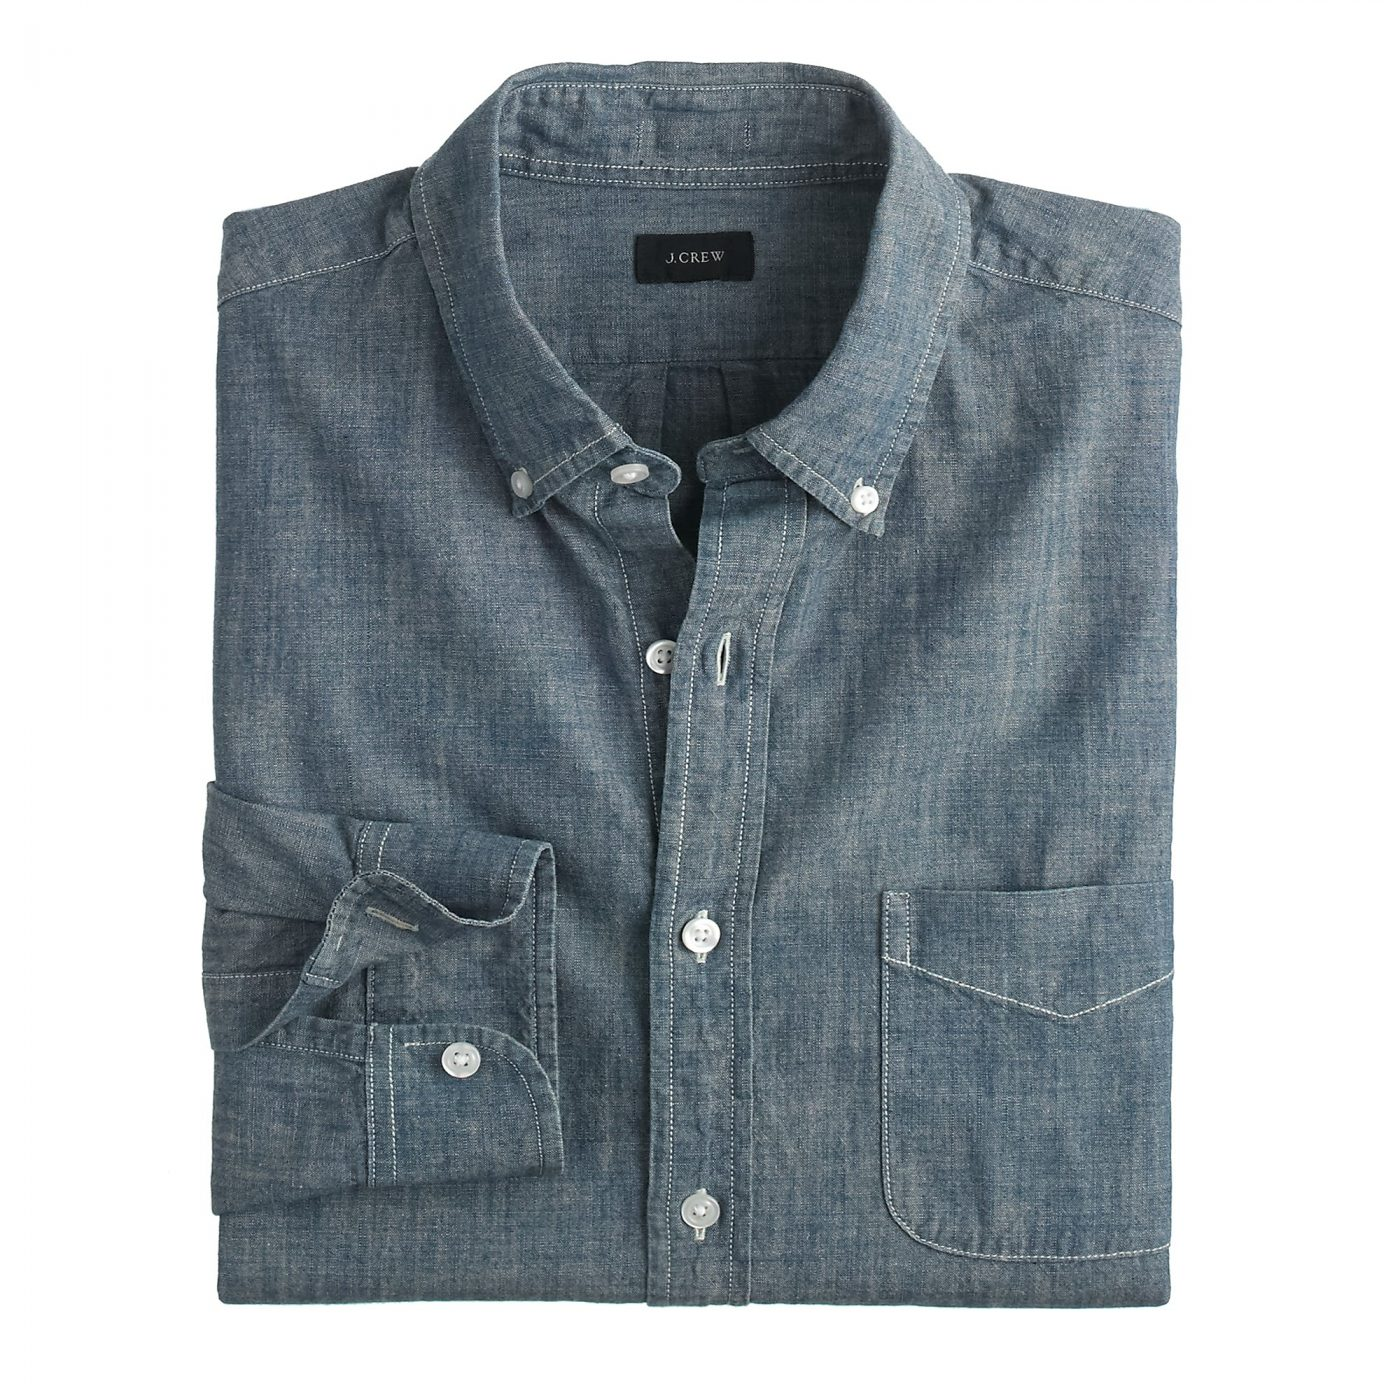 JCrew Chambray Shirt